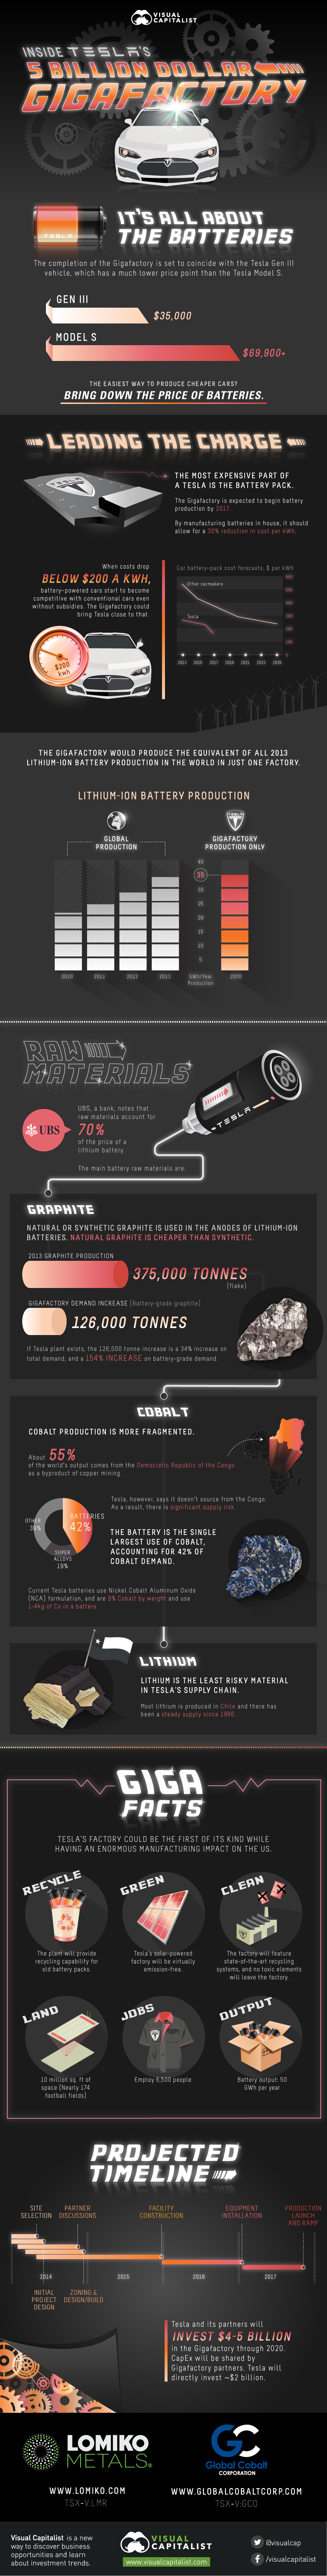 inside-teslas-5-billion-dollar-gigafactory1